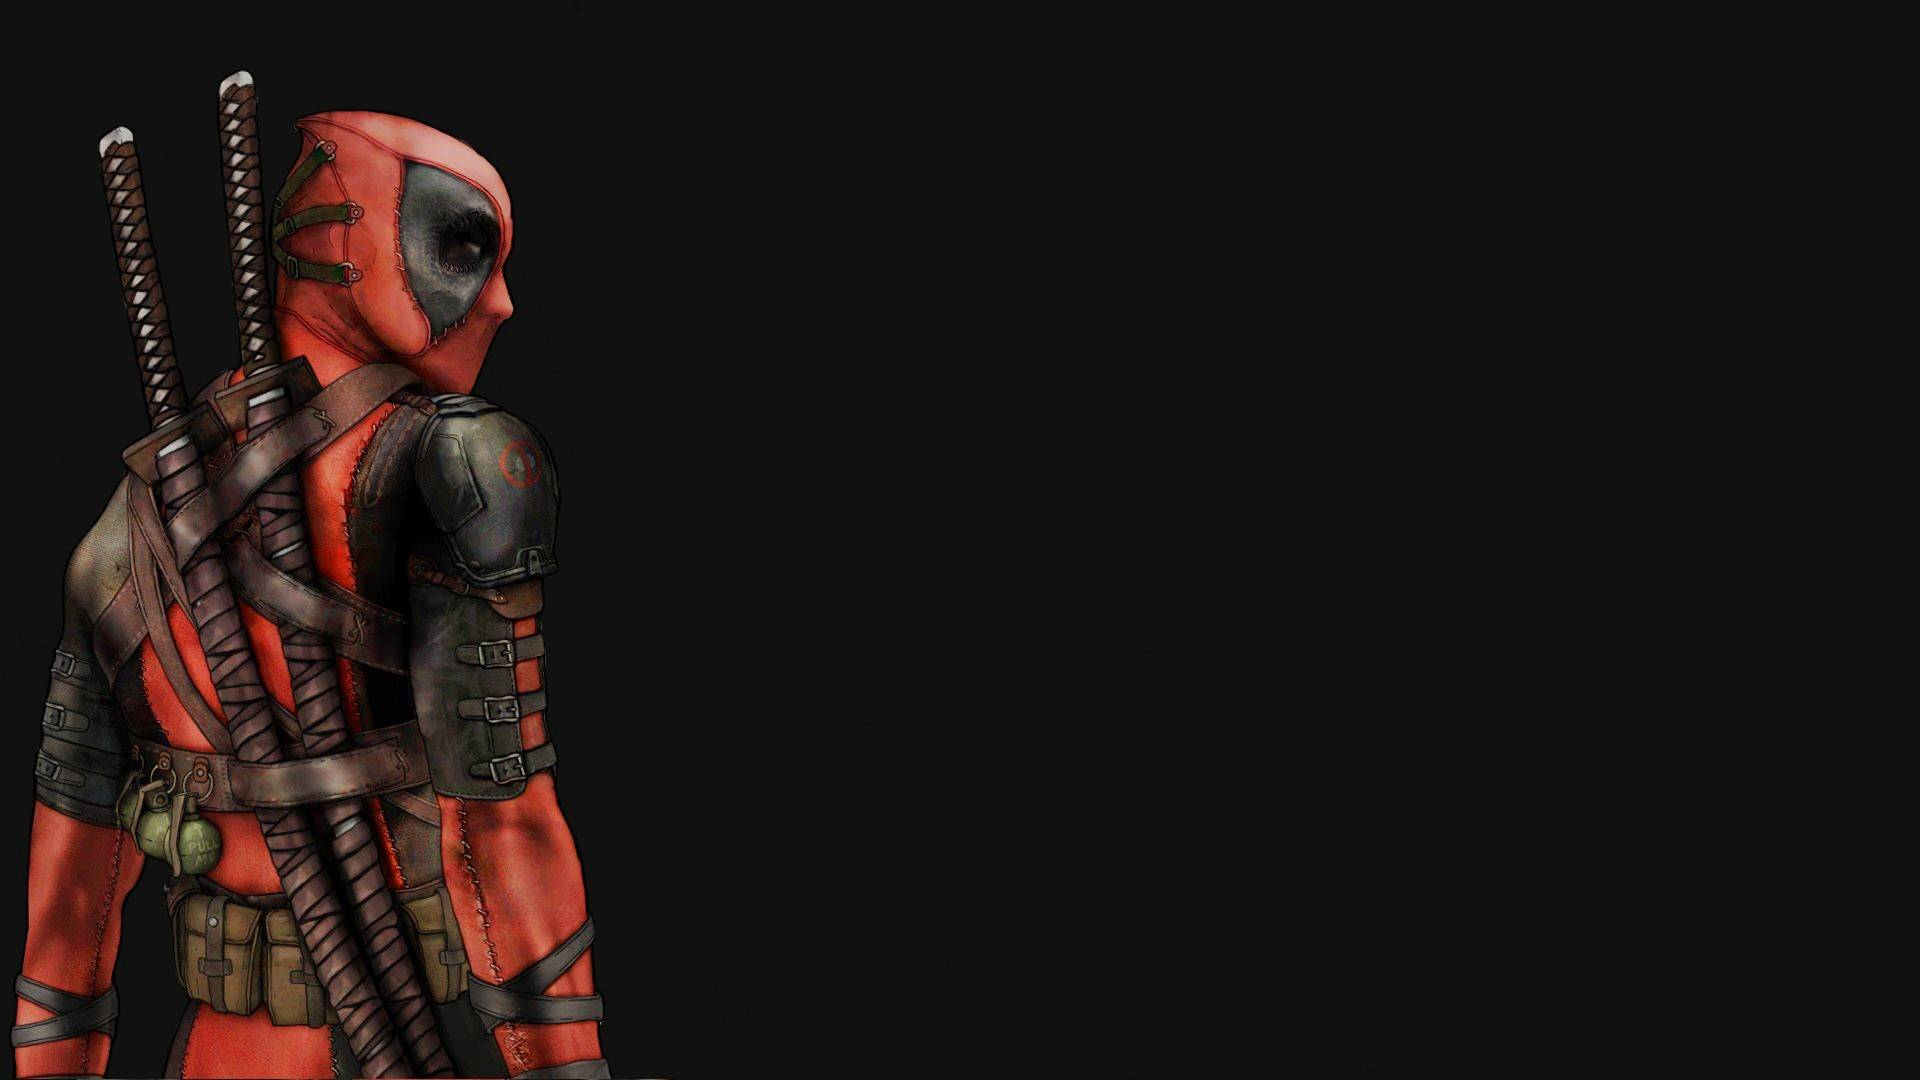 Deadpool Game Wallpaper 1920x1080 Deadpool wade 19201080 1920x1080